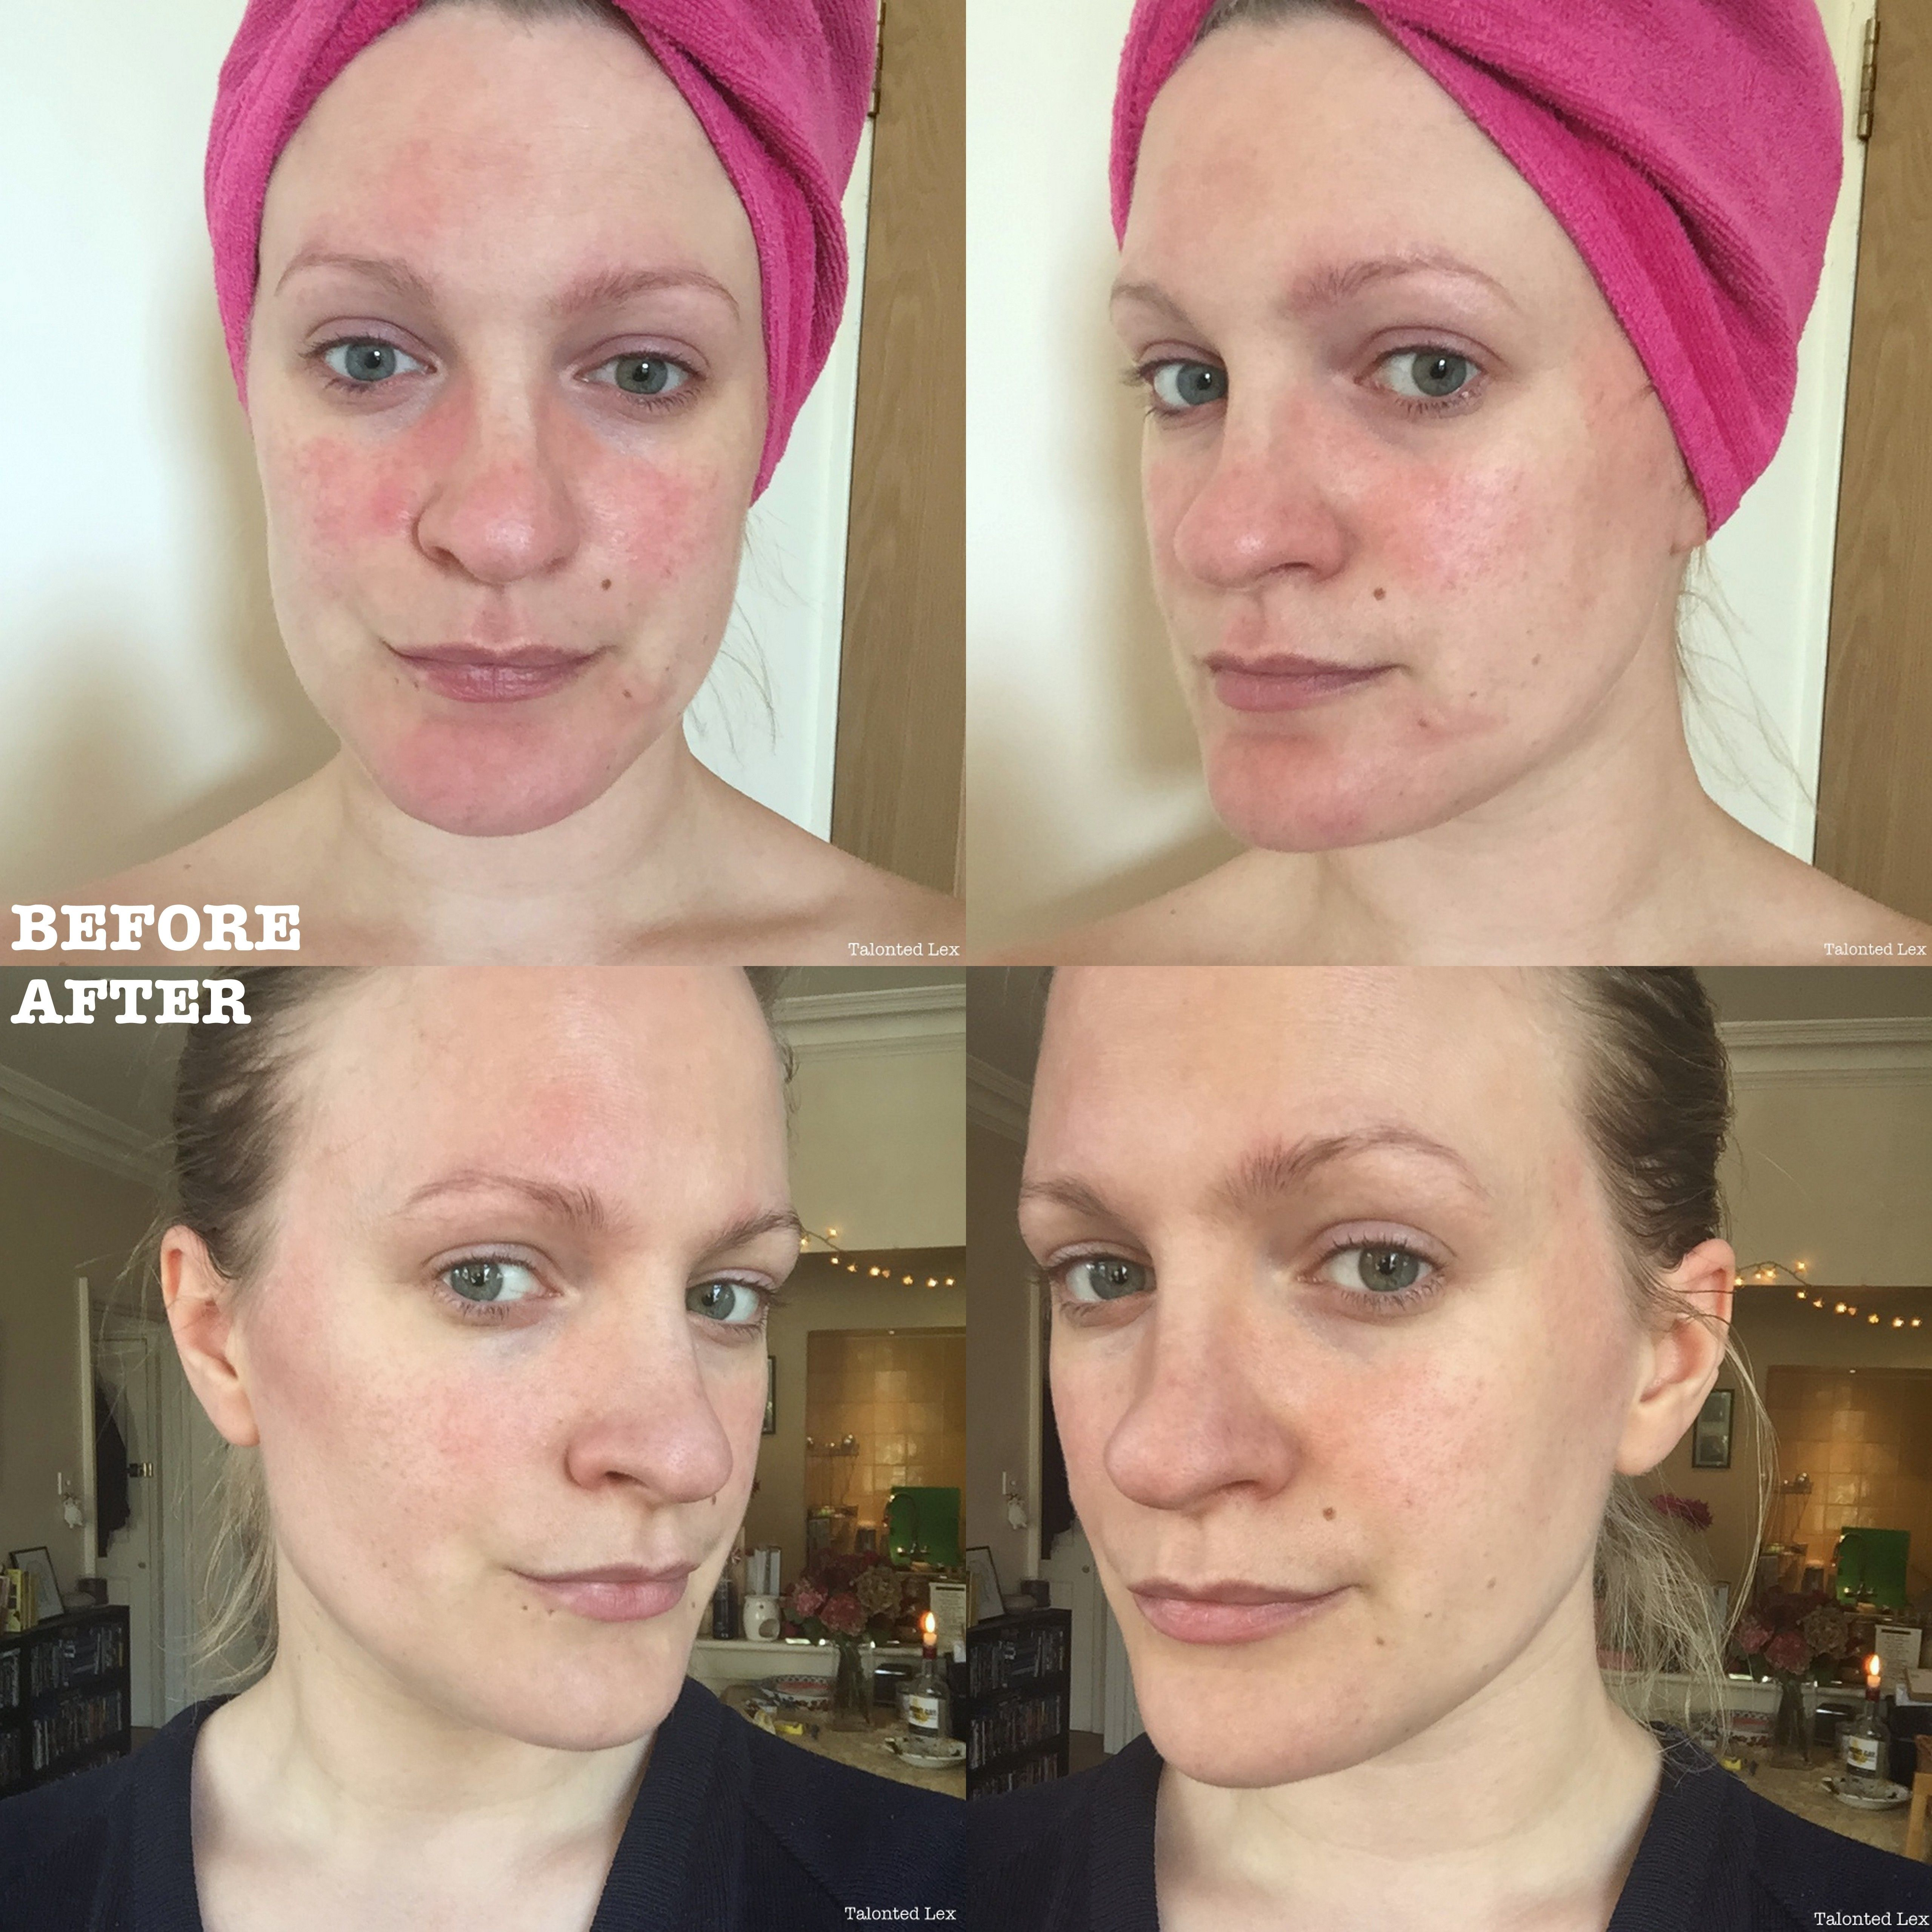 SEQuaderma Treatment For Rosacea And Facial Redness AD  talonted lex is part of Rosacea treatment - SEQuaderma Treatment For Rosacea And Facial Redness RosaceaReview  Want to see my before and after pics when trying this rosacea product